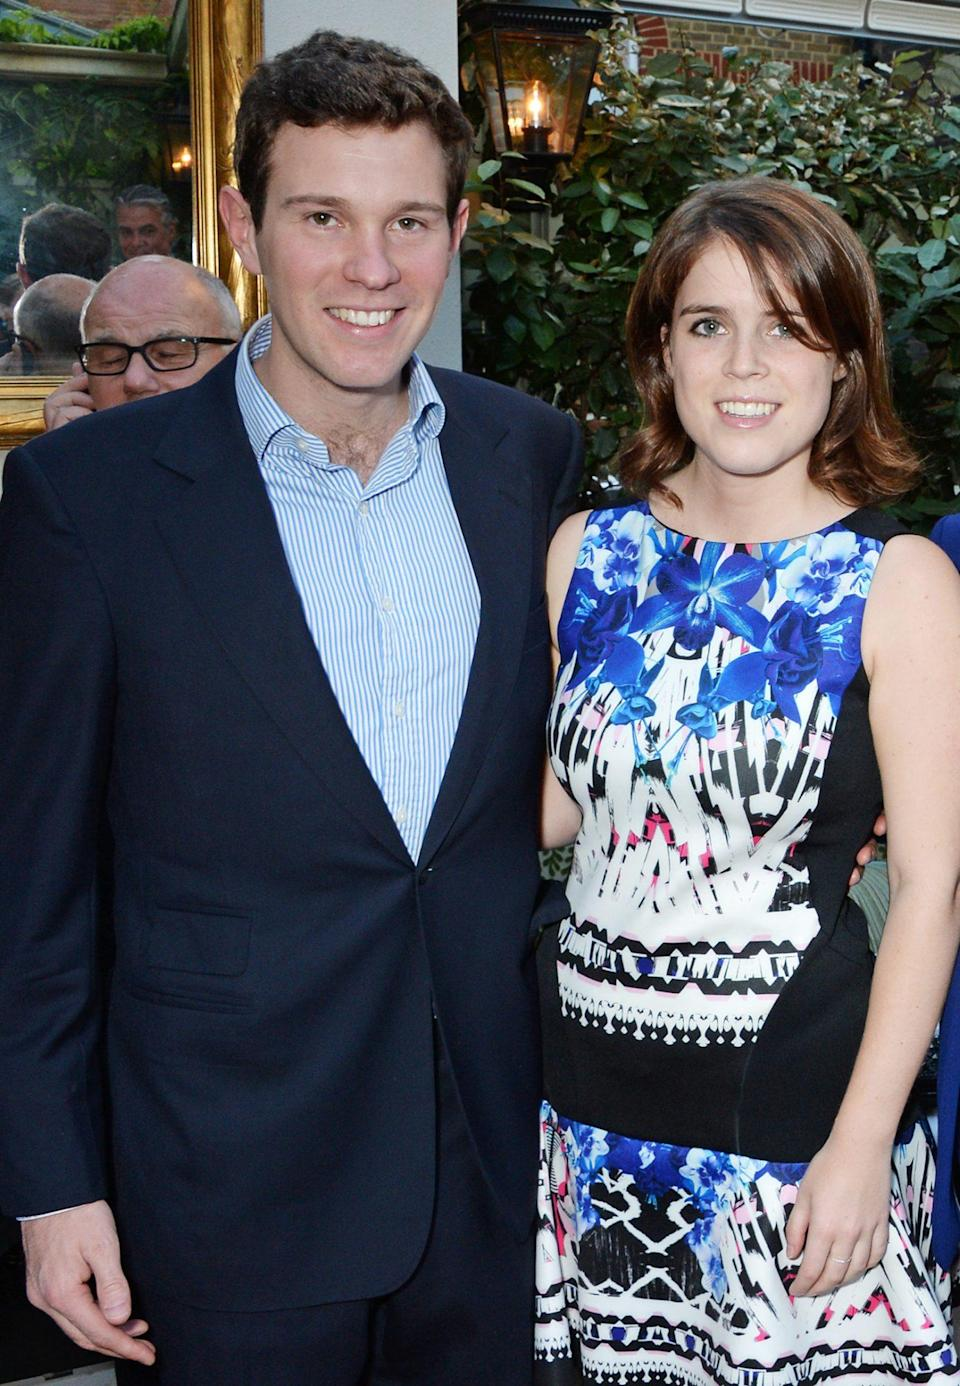 "<p>From 2013 to 2015, the couple made their relationship long distance while Eugenie lived in New York City for work. </p> <p>""We spend a lot of time on Skype,"" Jack told the <em>Daily Mail</em>. ""It's great. We are still very much together.""</p>"